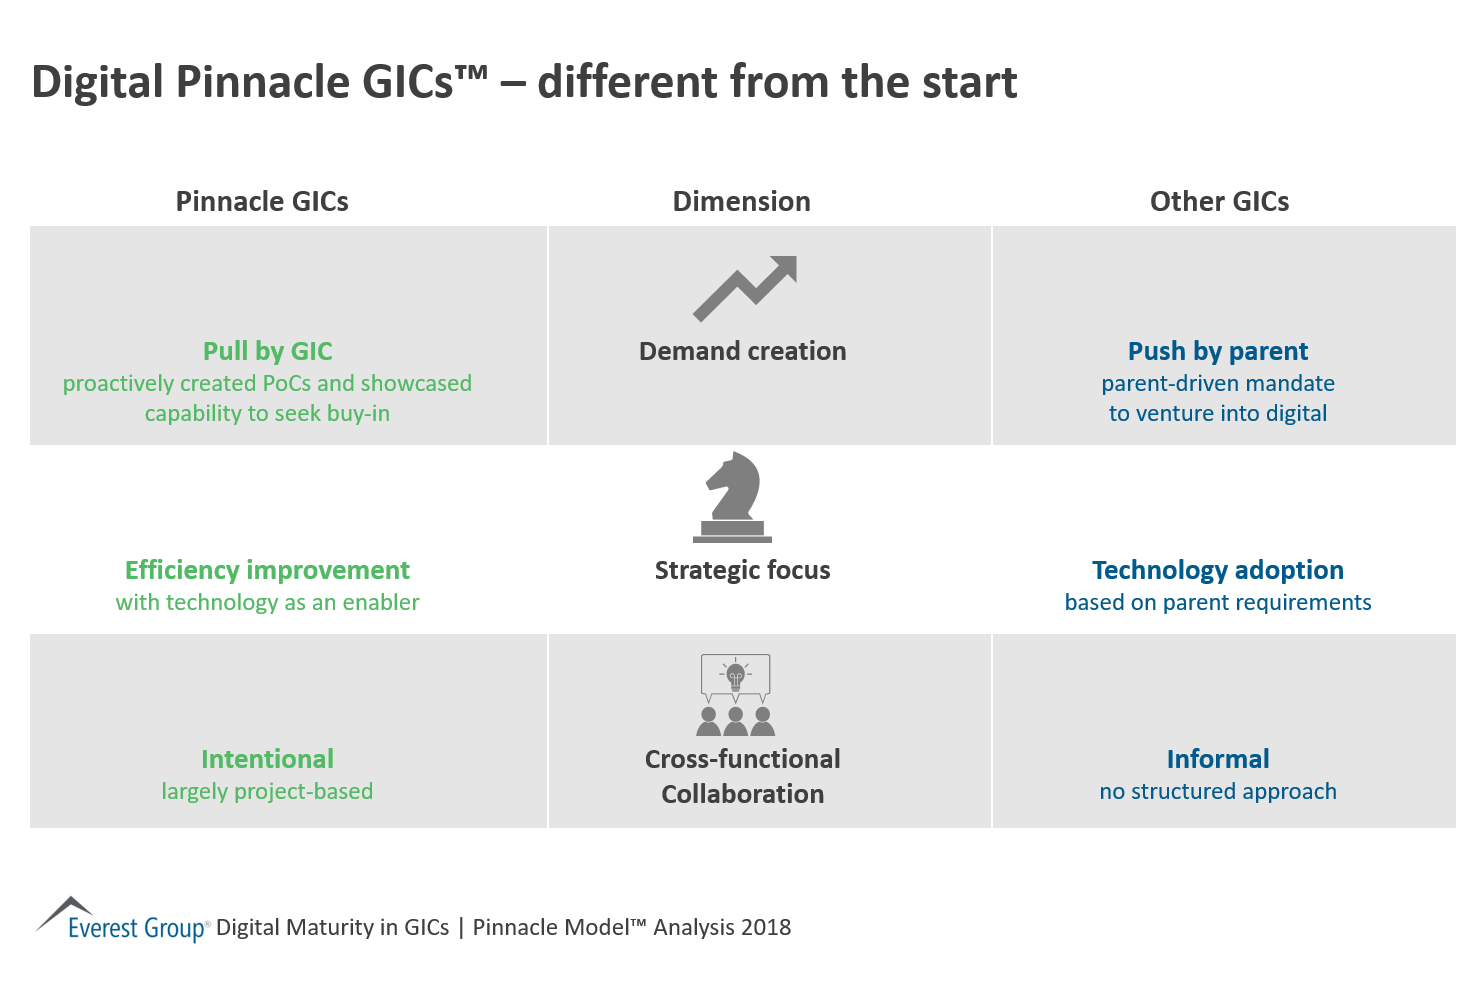 Digital Pinnacle GICs™ - different from the start